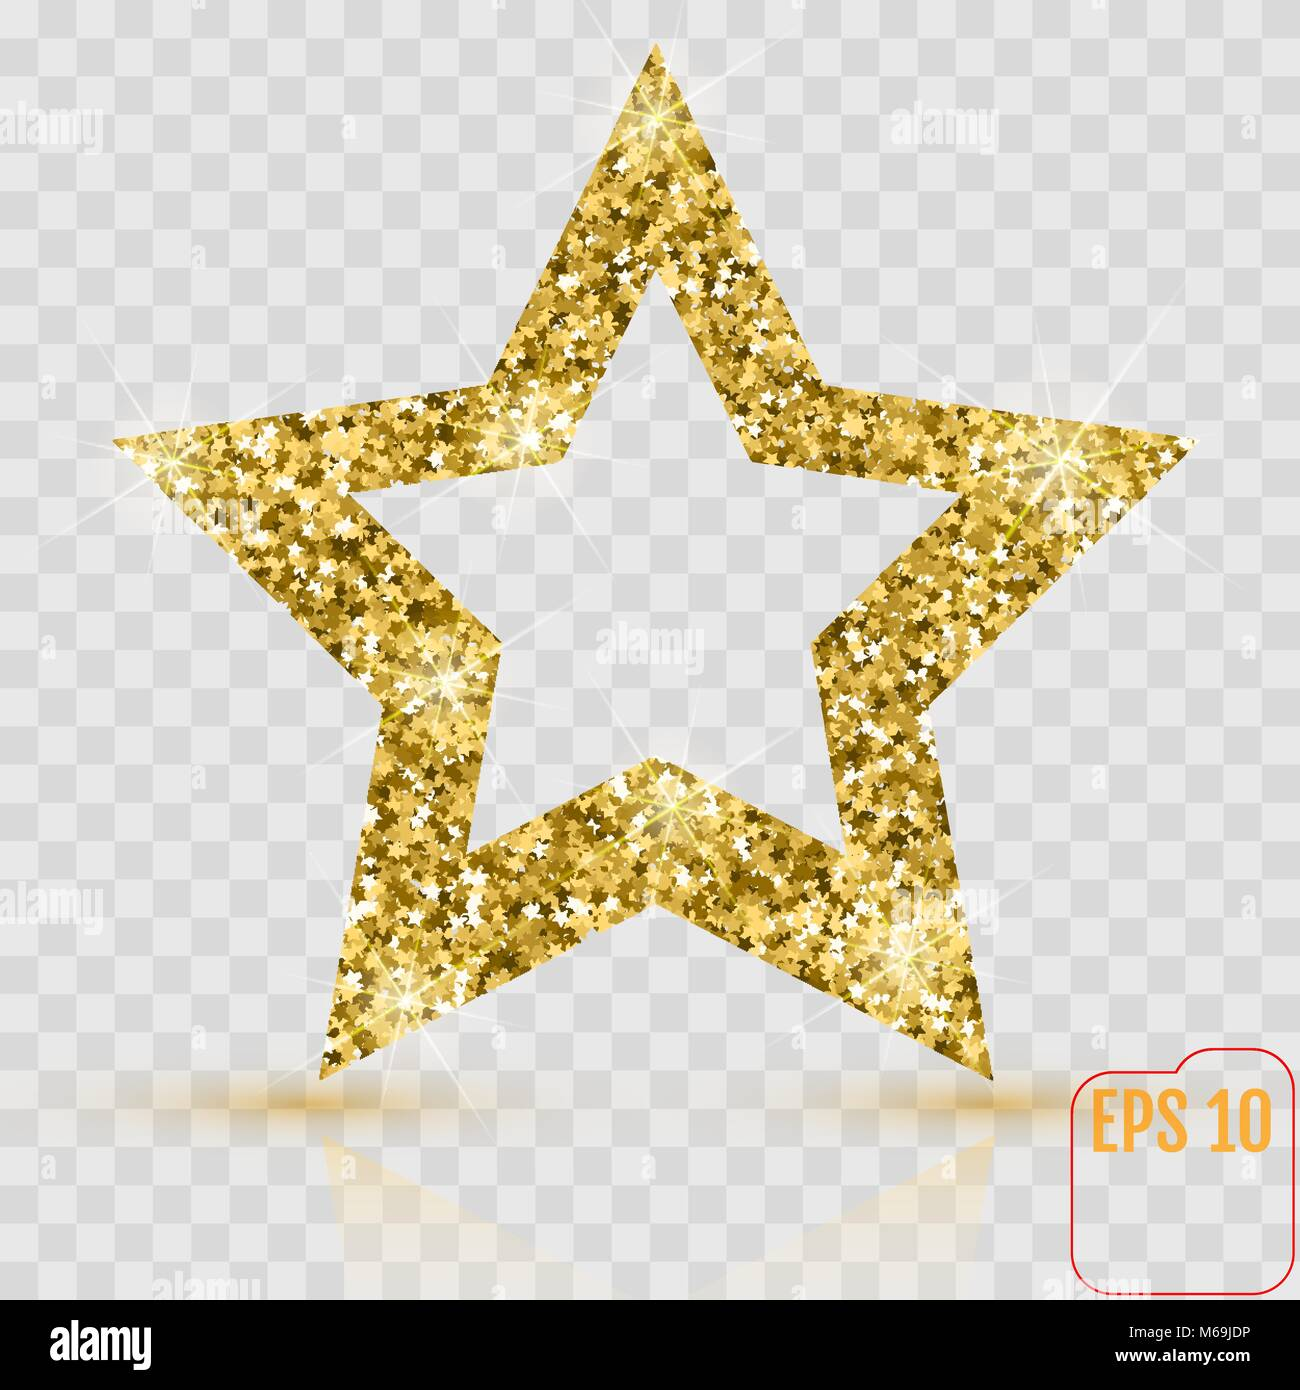 Shiny Gold Star Small Stars Stock Photos Shiny Gold Star Small